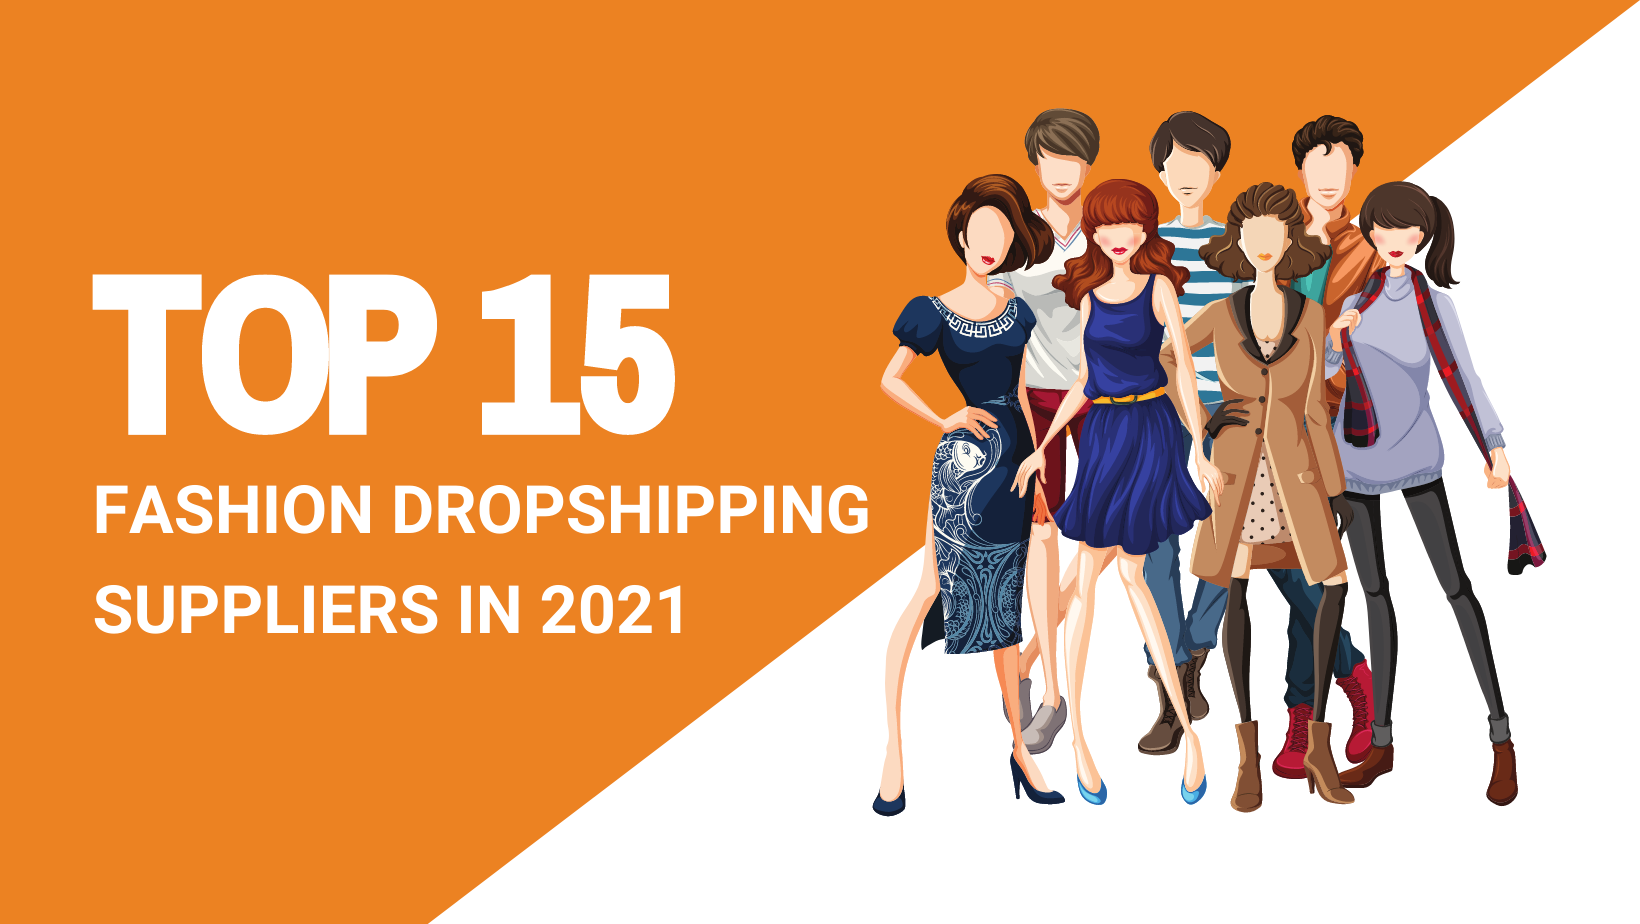 TOP 15 FASHION DROPSHIPPING SUPPLIERS IN 2021